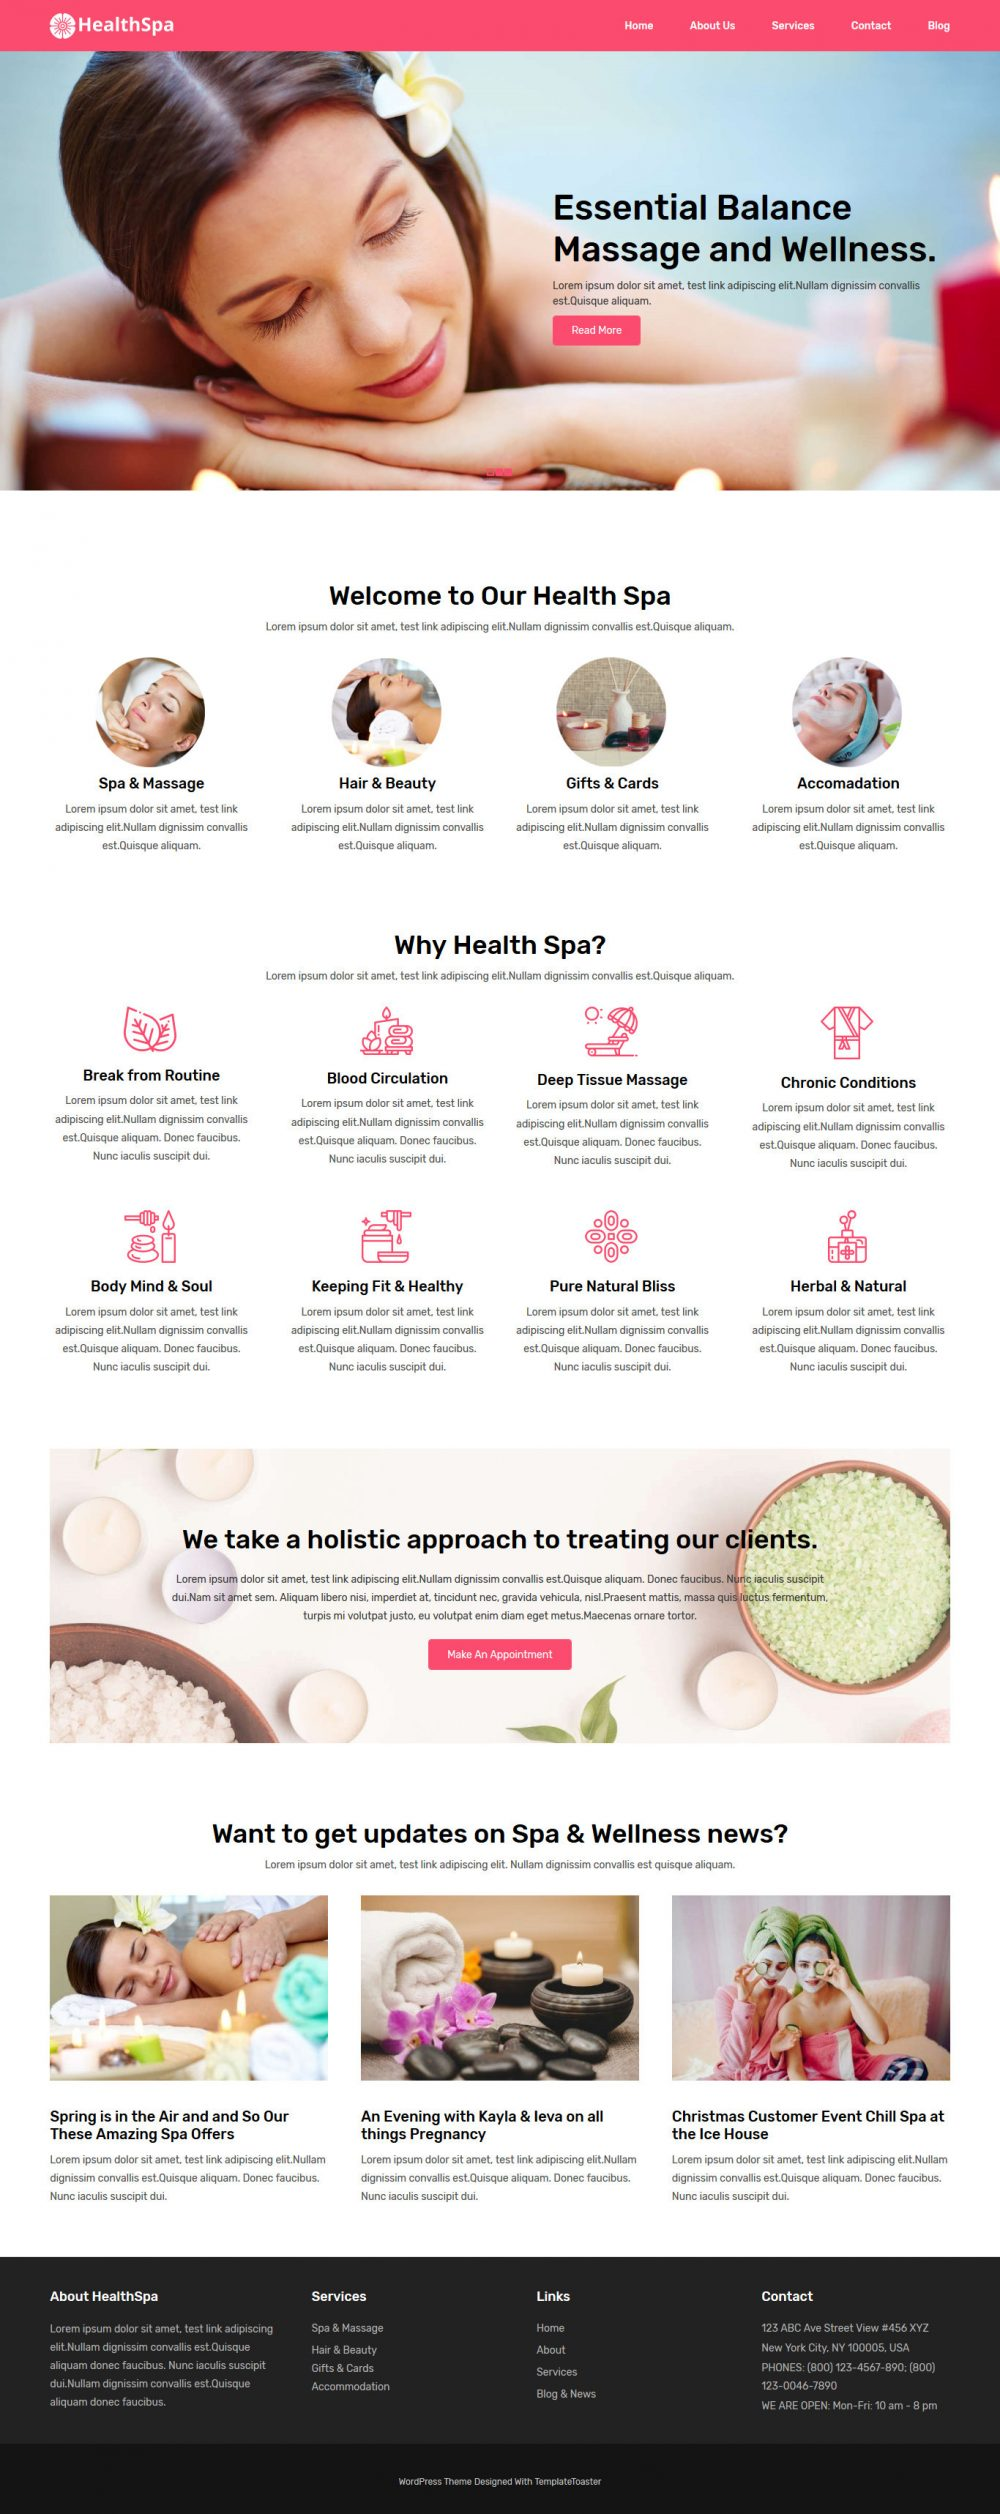 HealthSpa Salon and Spa Drupal Theme